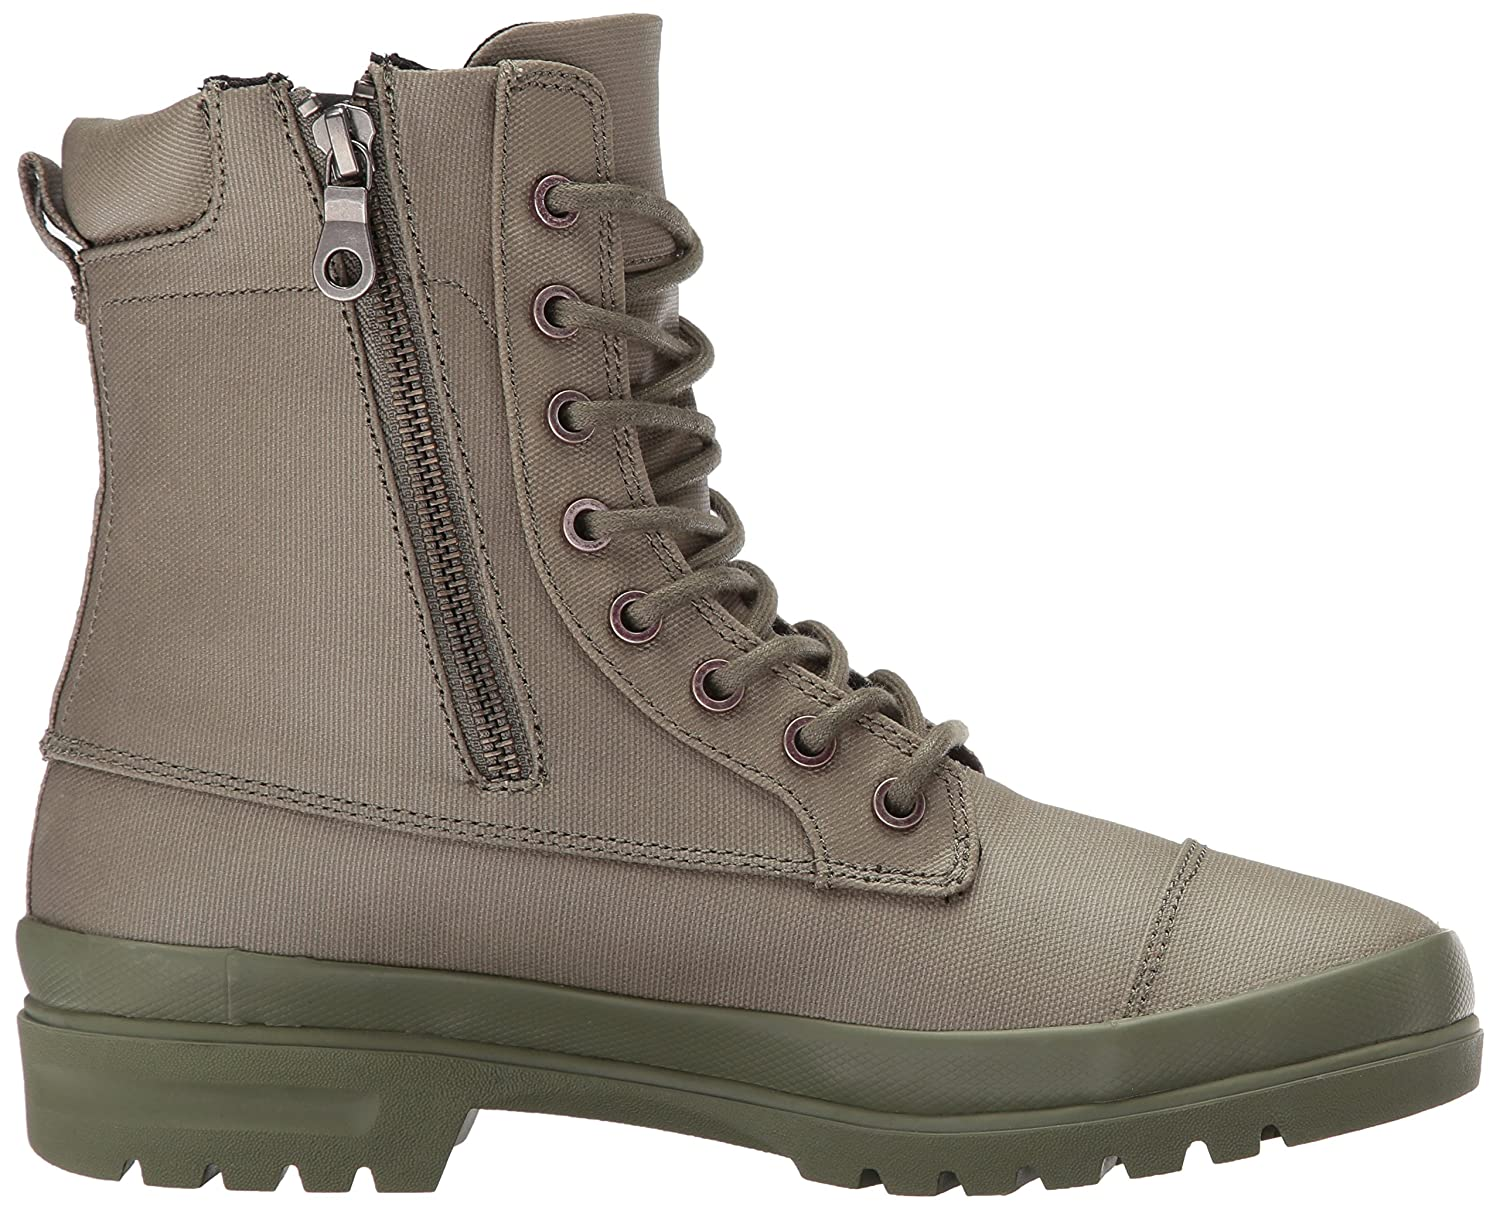 DC Women's Amnesti TX Ankle US|Olive Boot B01N1SN0DO 11 B(M) US|Olive Ankle b0d667